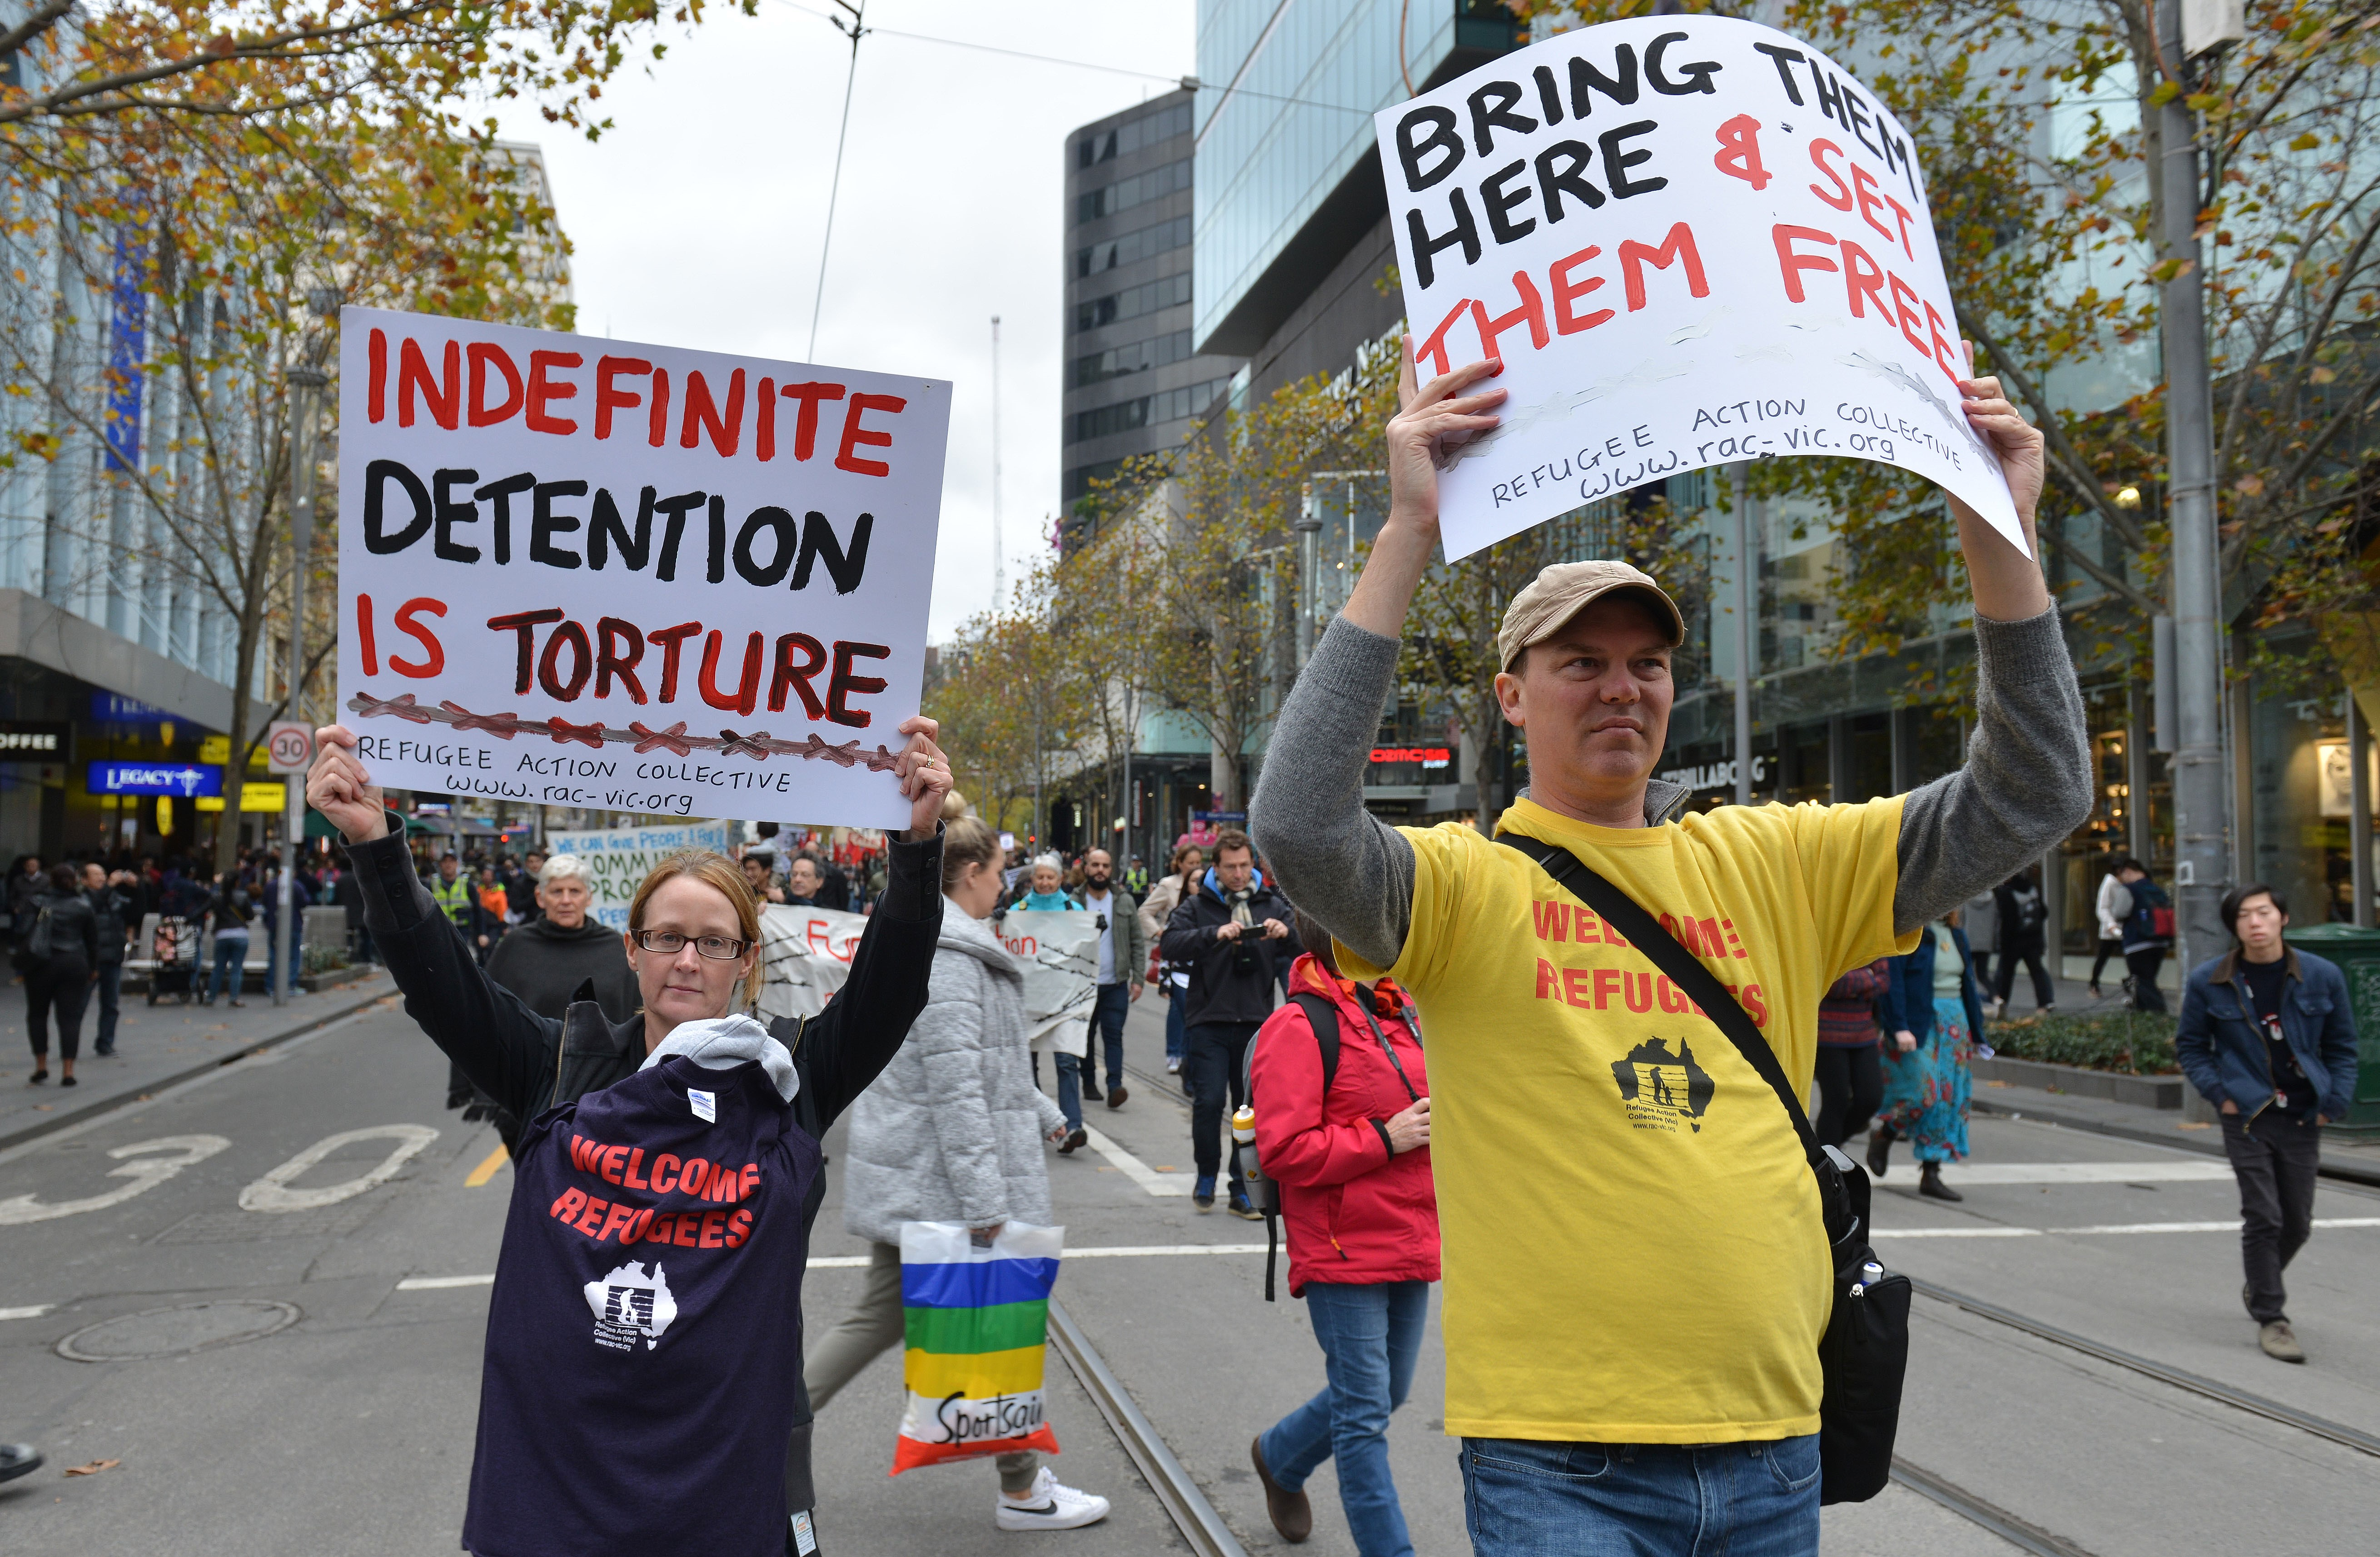 Australians hold banners as they attend a demonstration within the 'International Migrant day' in Melbourne, Australia on June 18, 2016.